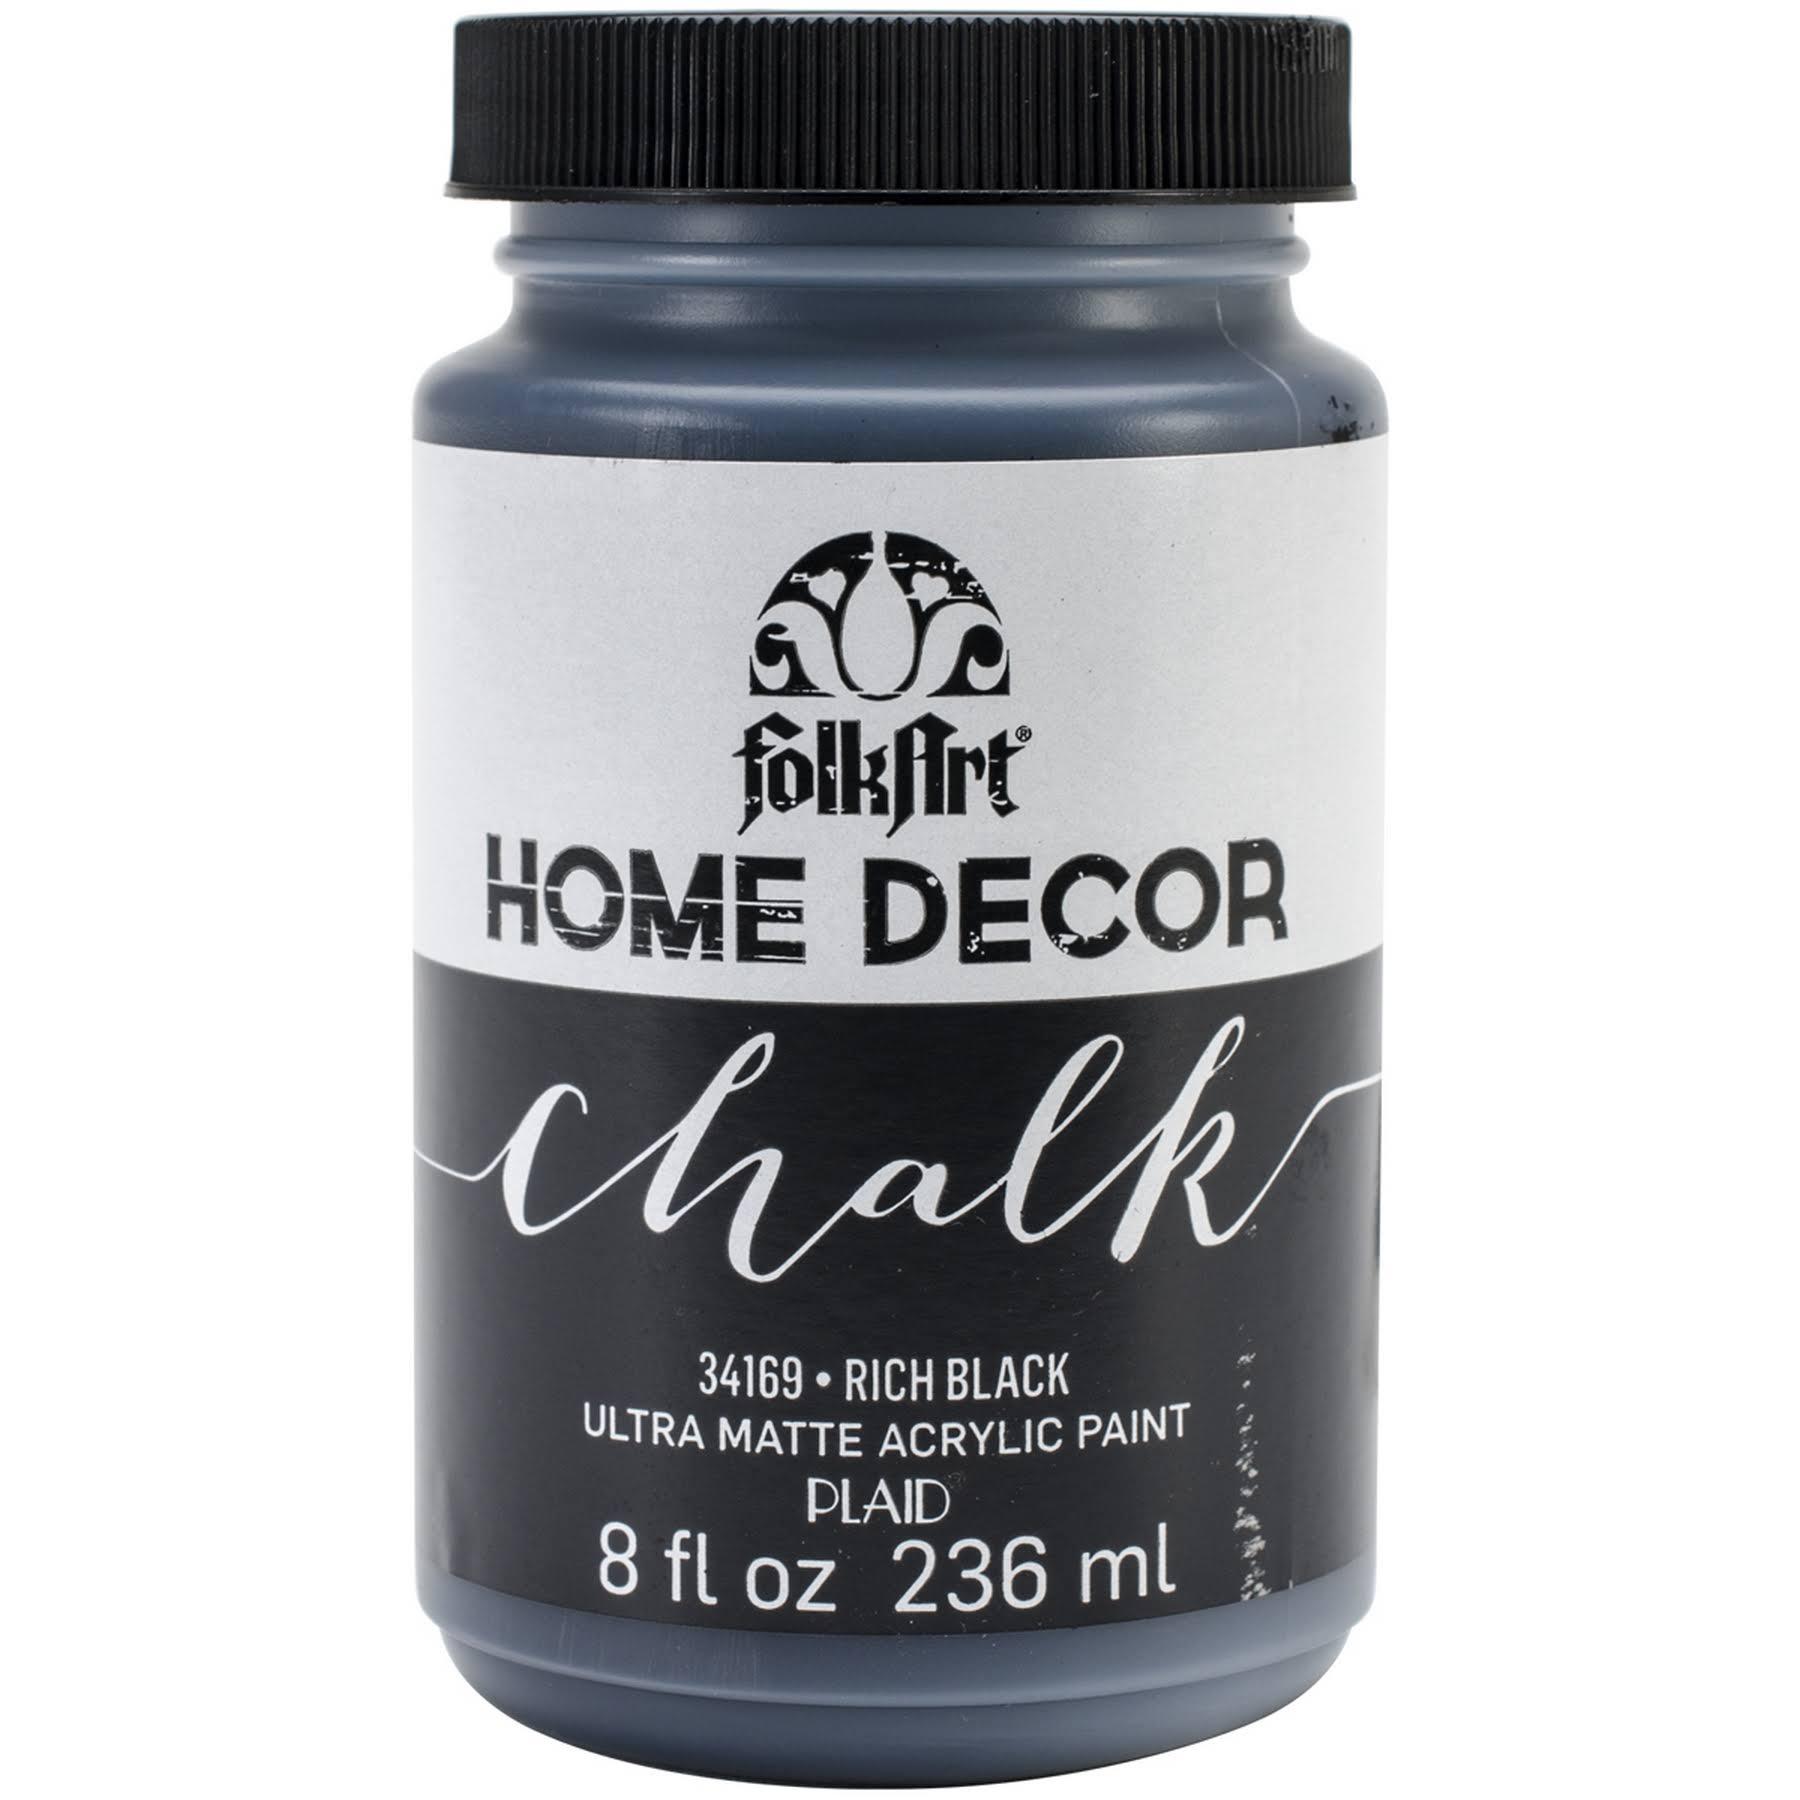 FolkArt Home Decor Chalk Paint - Black, 236ml